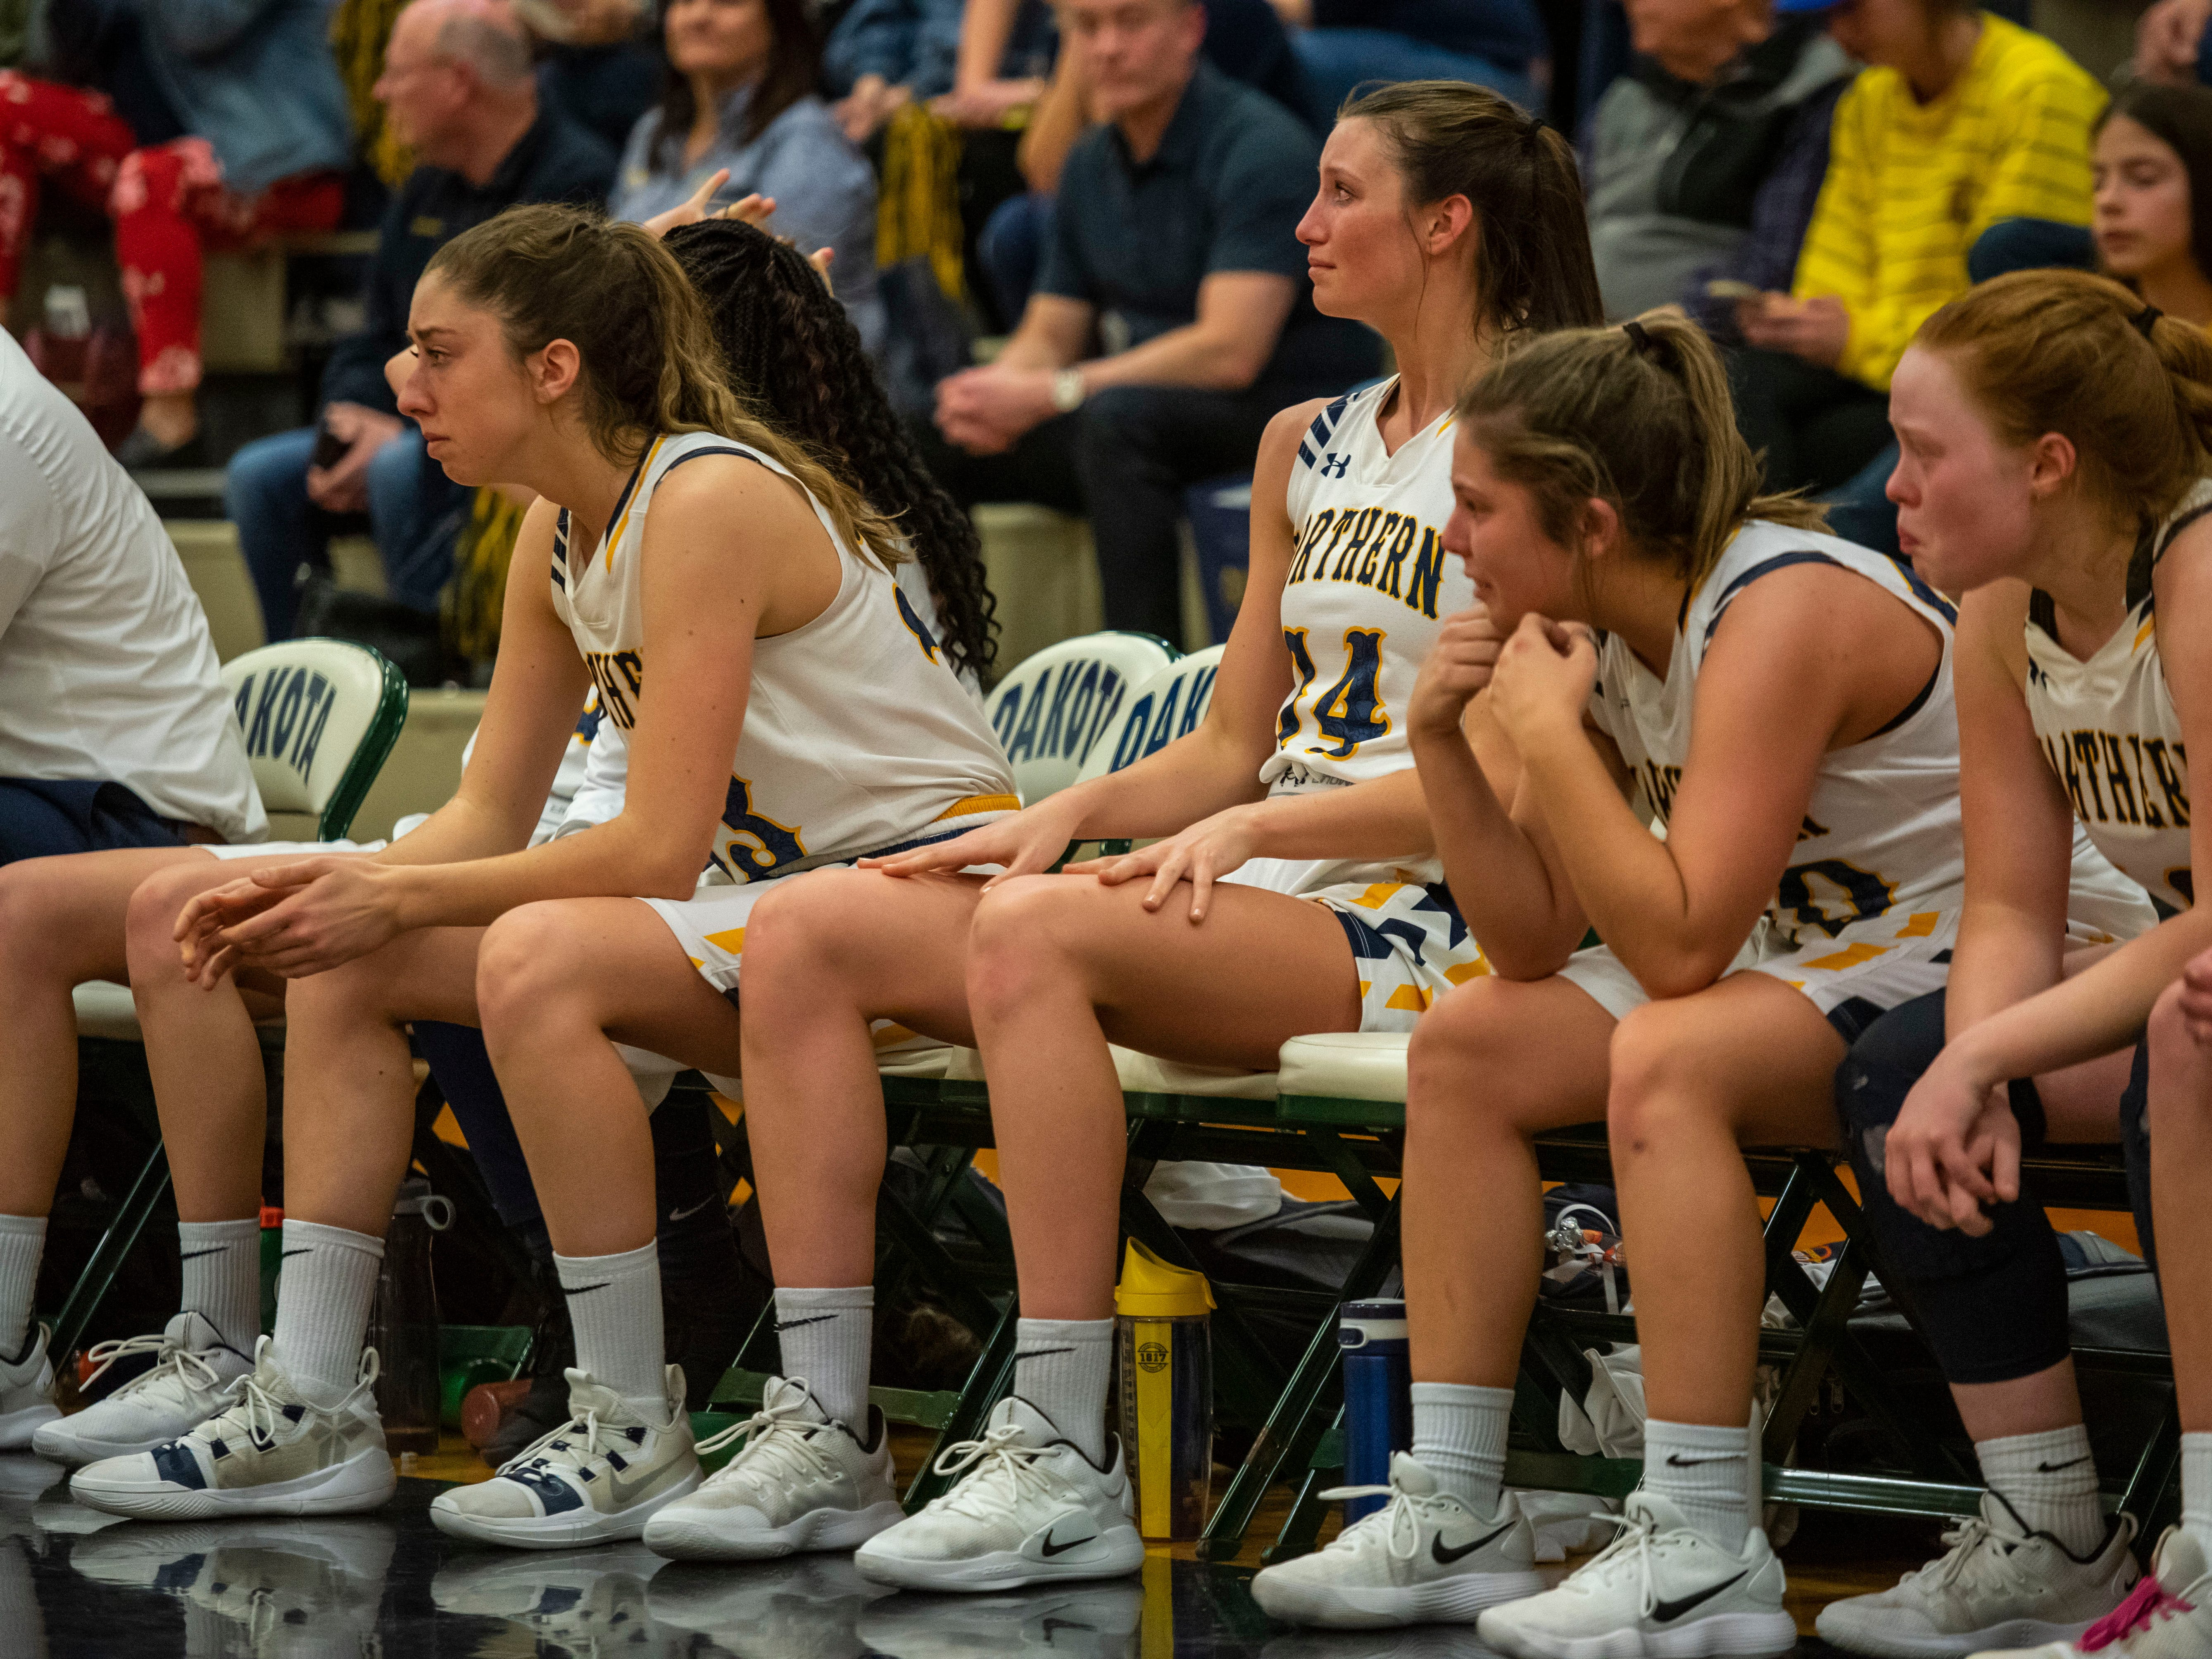 The Port Huron Northern High School girls basketball team get emotion watching the end of the MHSAA Division 1 Region 8 girls basketball finals against Lakeview High School Wednesday, March 13, 2019 at Macomb Dakota High School. Northern lost 37-46.